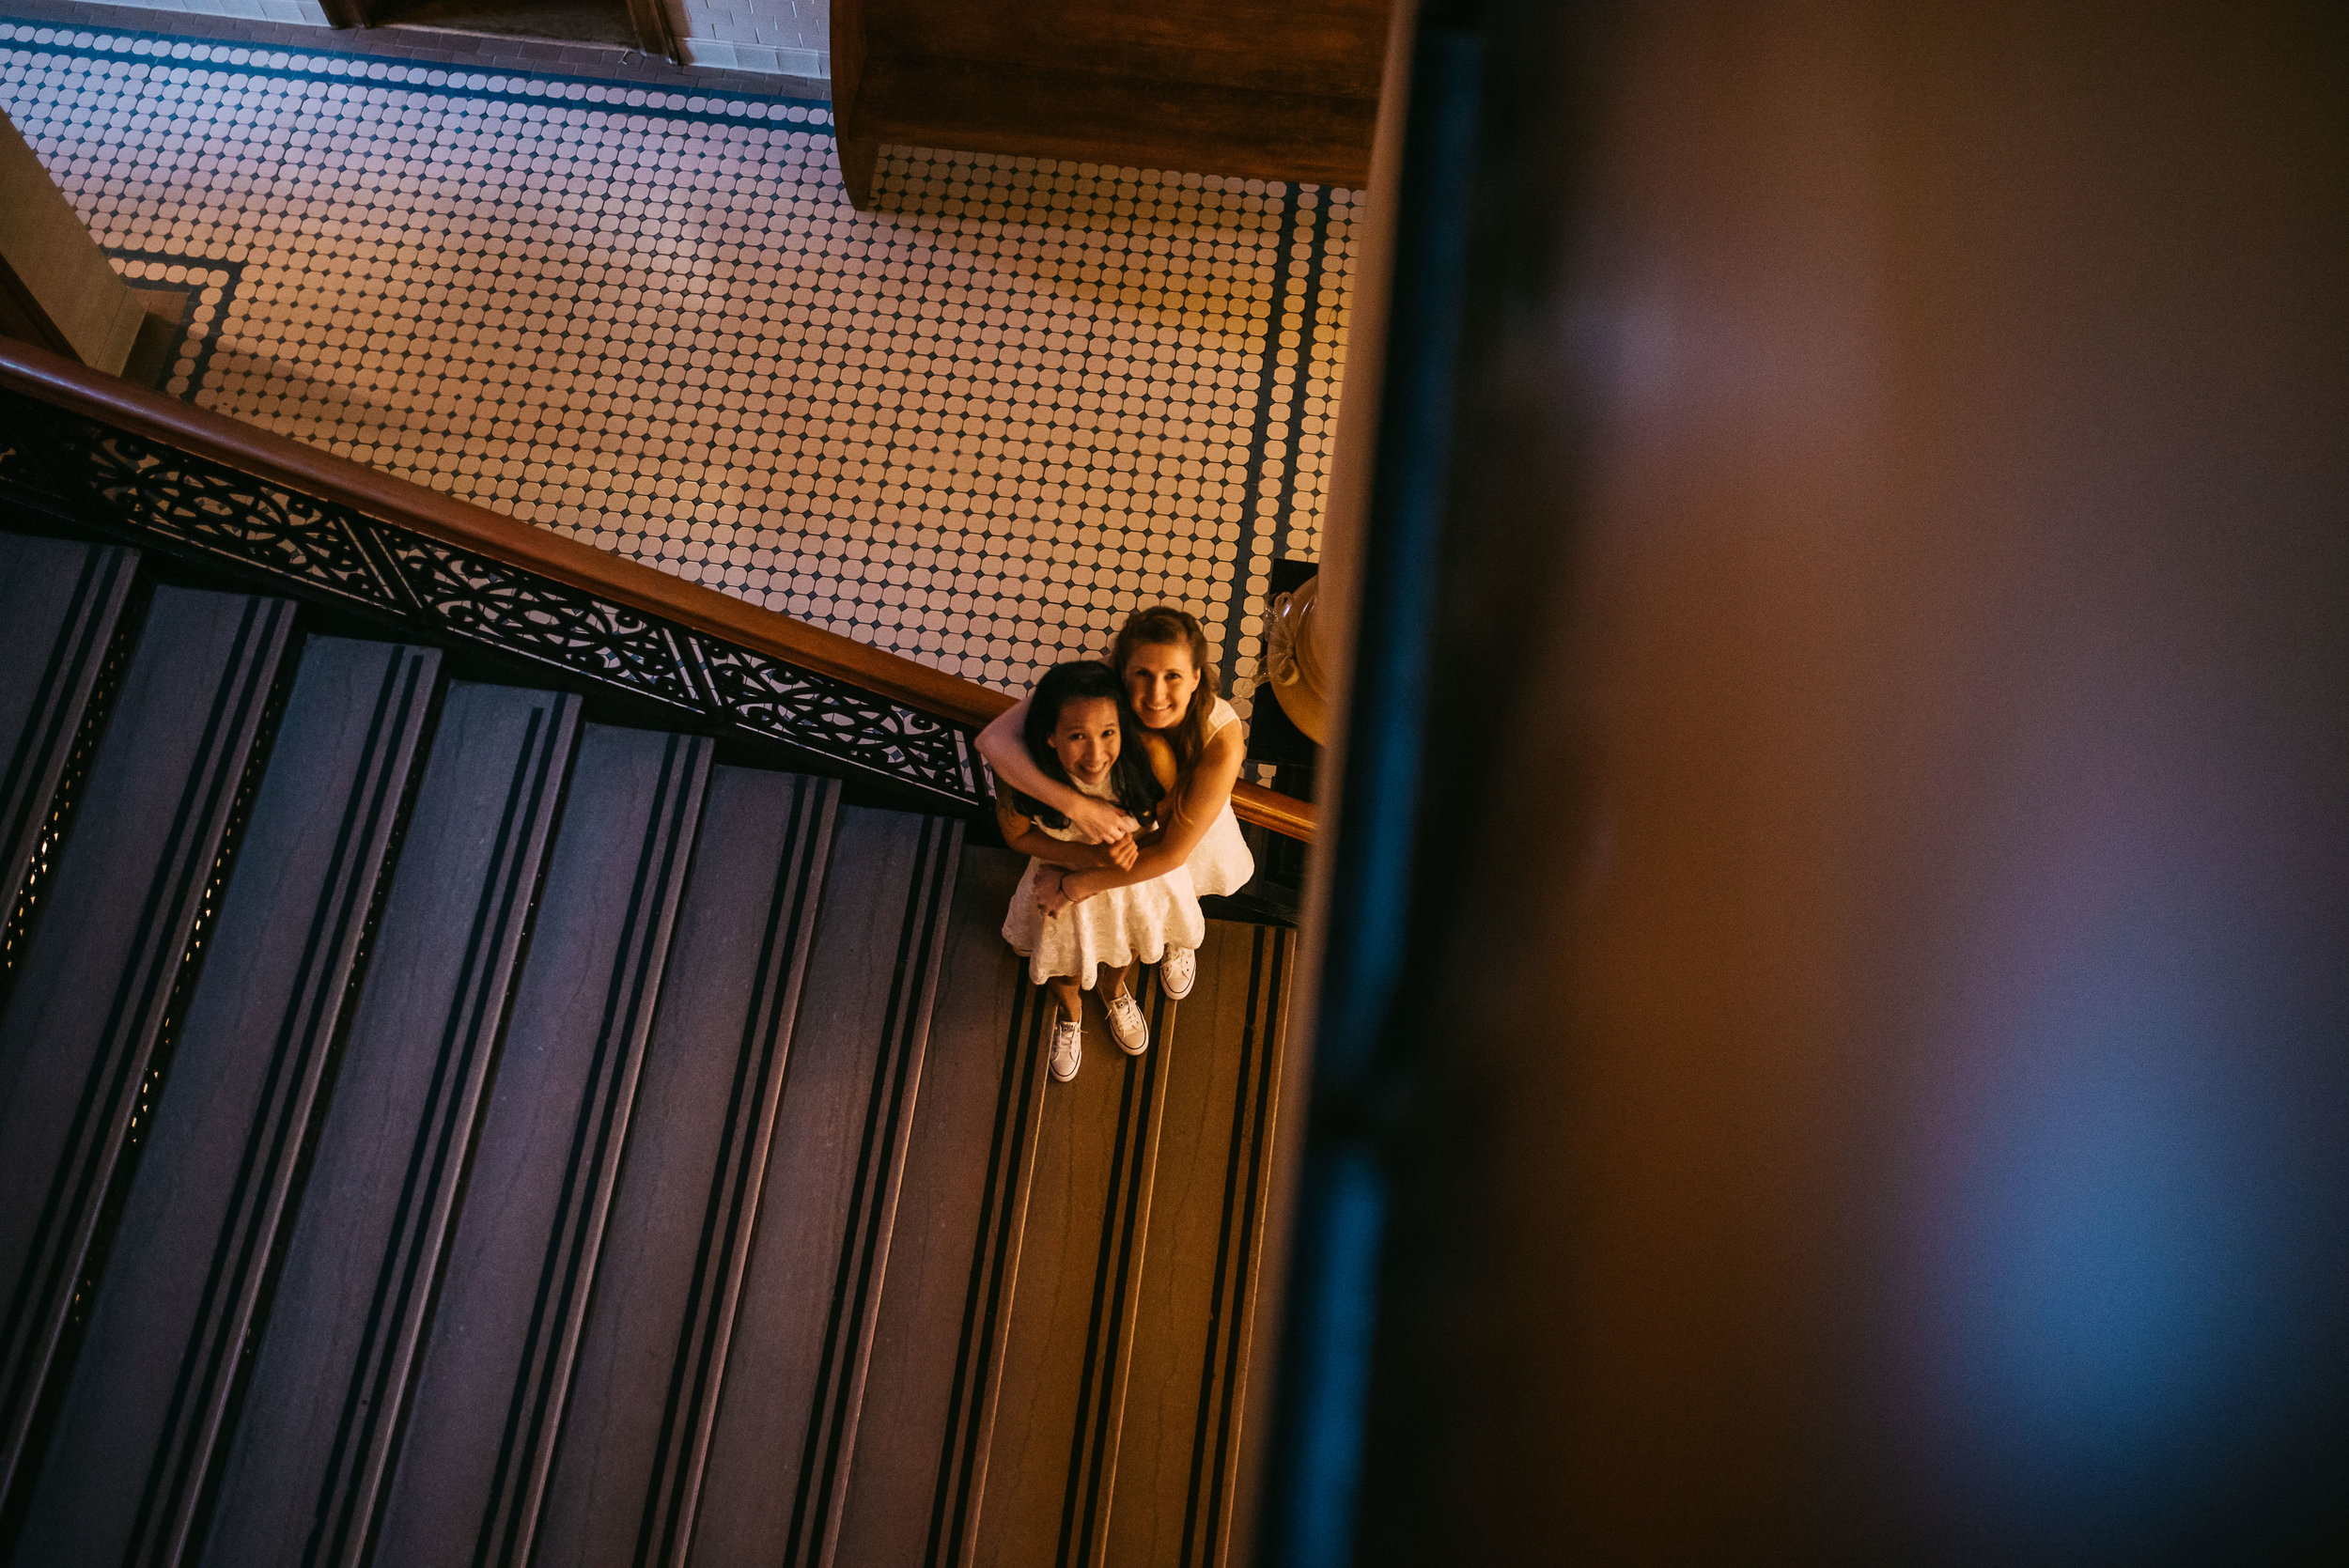 debbie-kelly-santa-ana-old-orange-county-courthouse-elopement-wedding-1-133.jpg